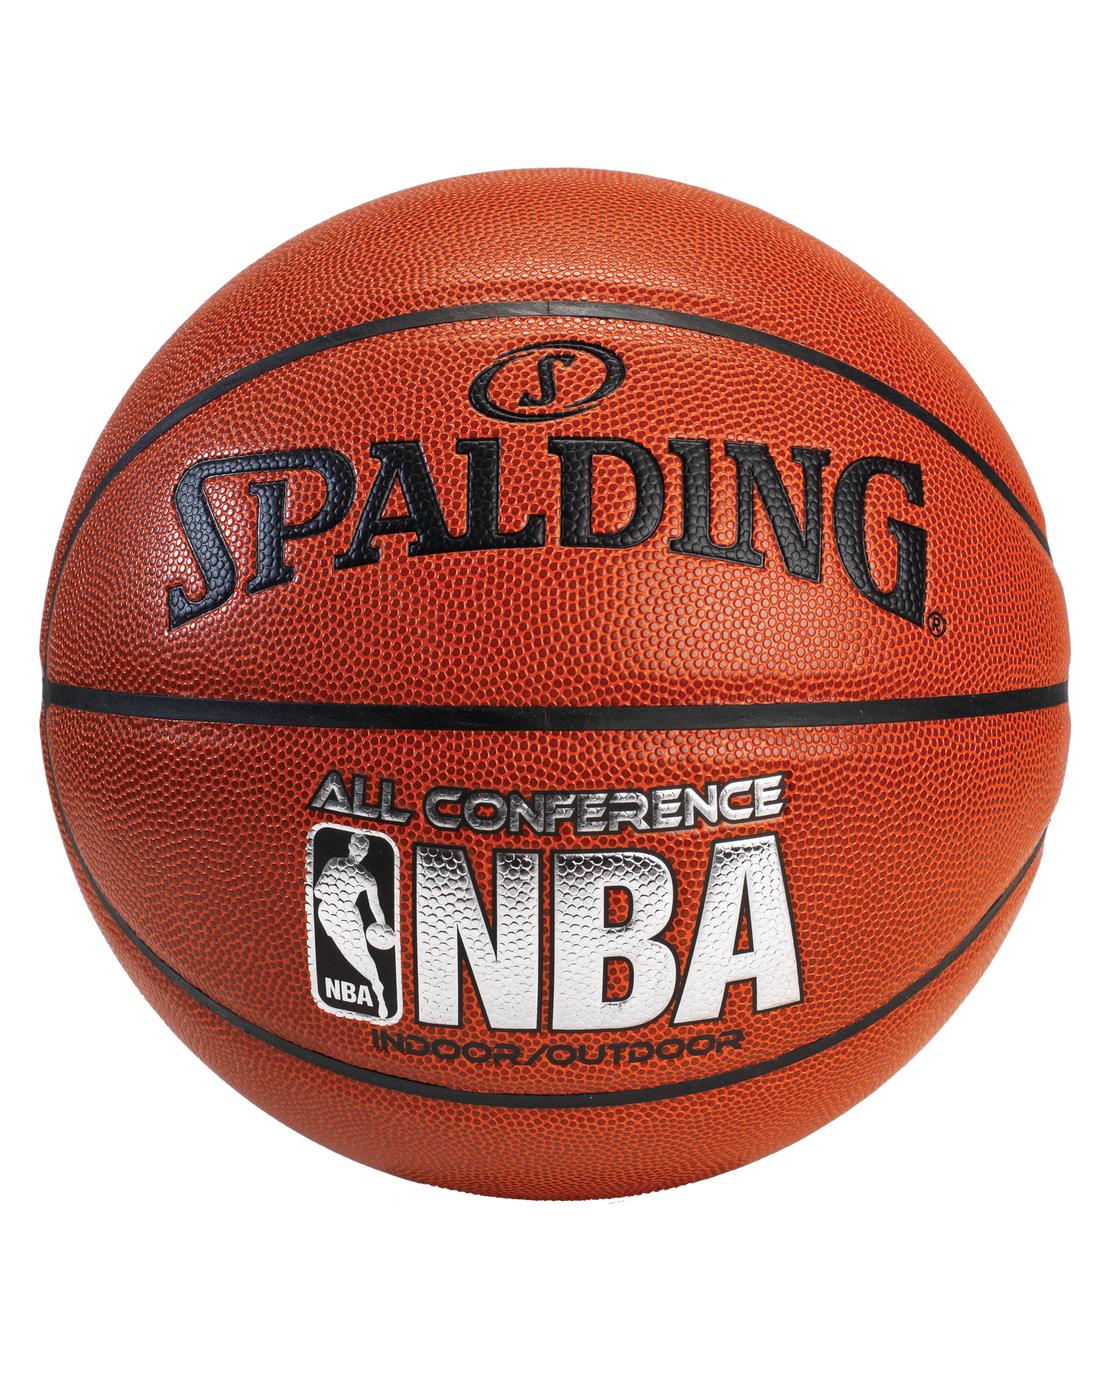 NBA ALL CONFERENCE BASKETBALL - Spalding US